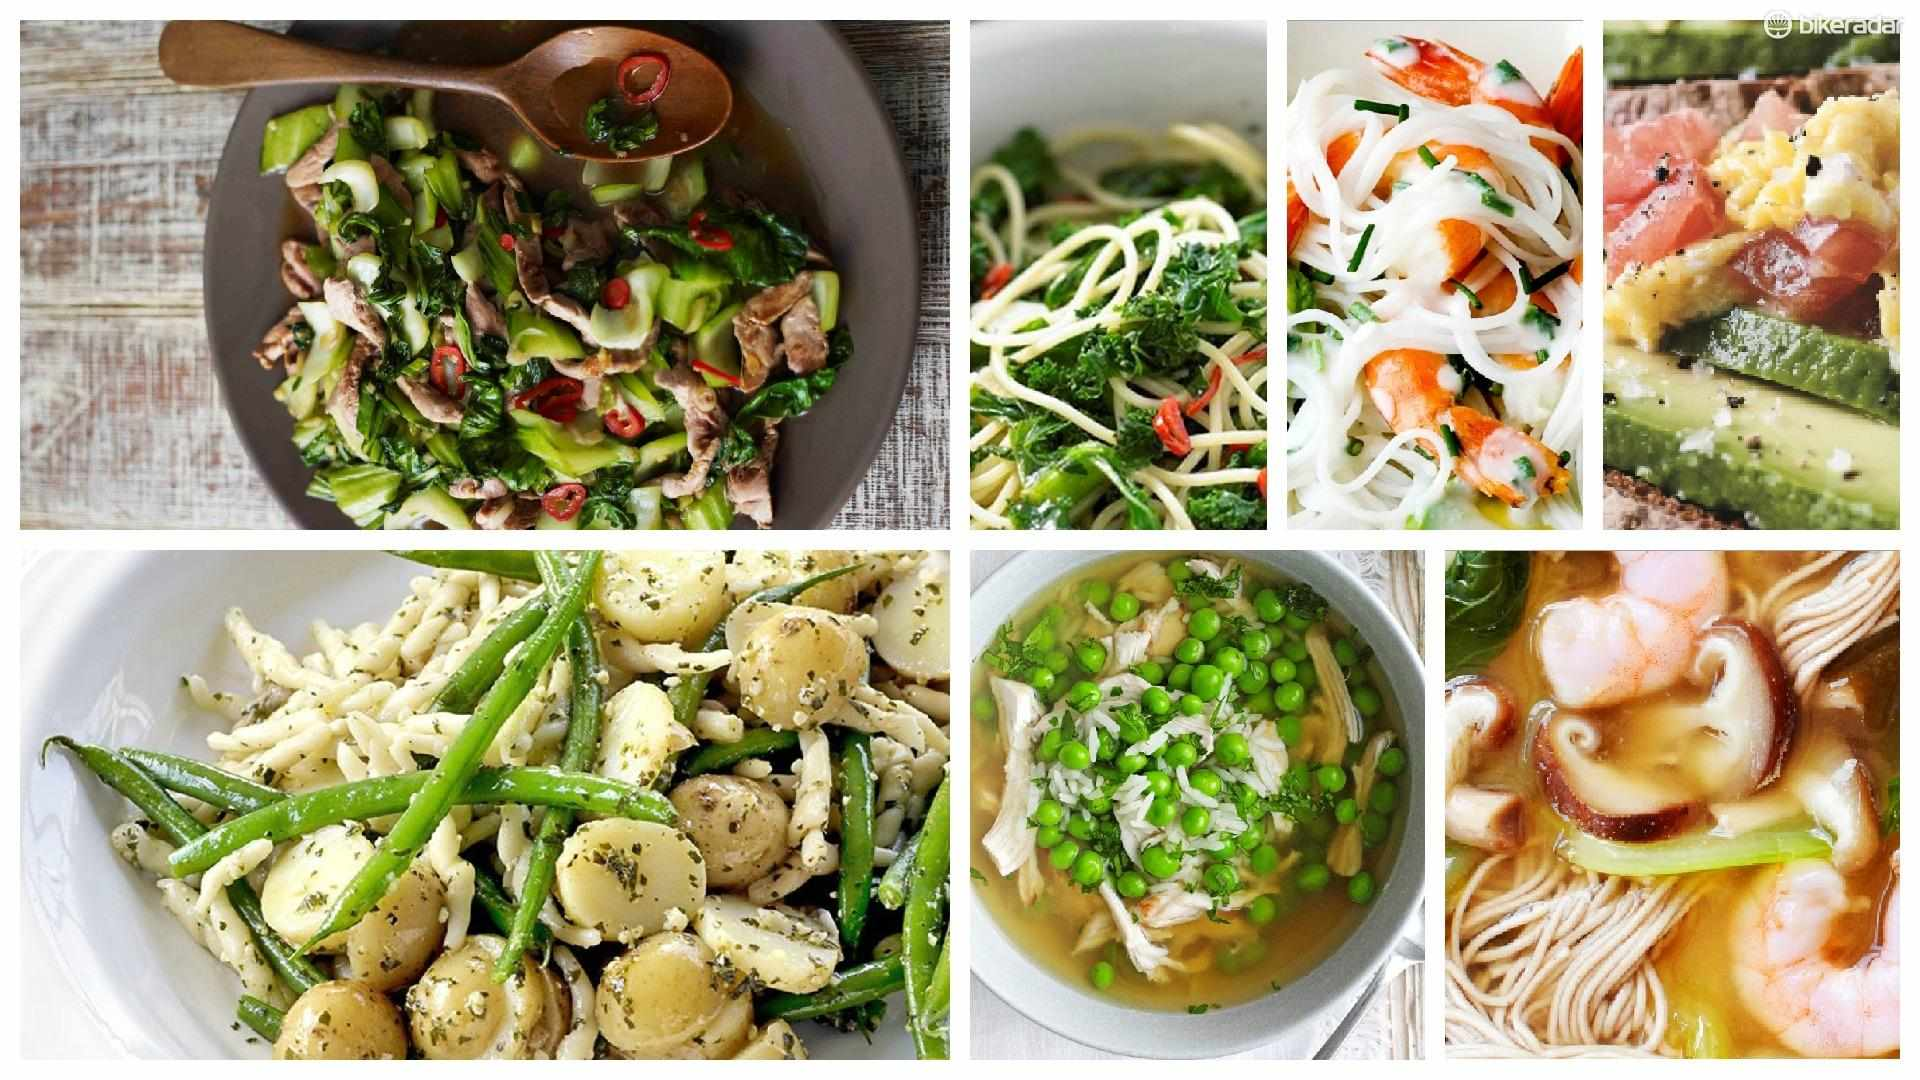 Quick and easy meals, ready in 15 minutes, and perfect for post-ride refuelling